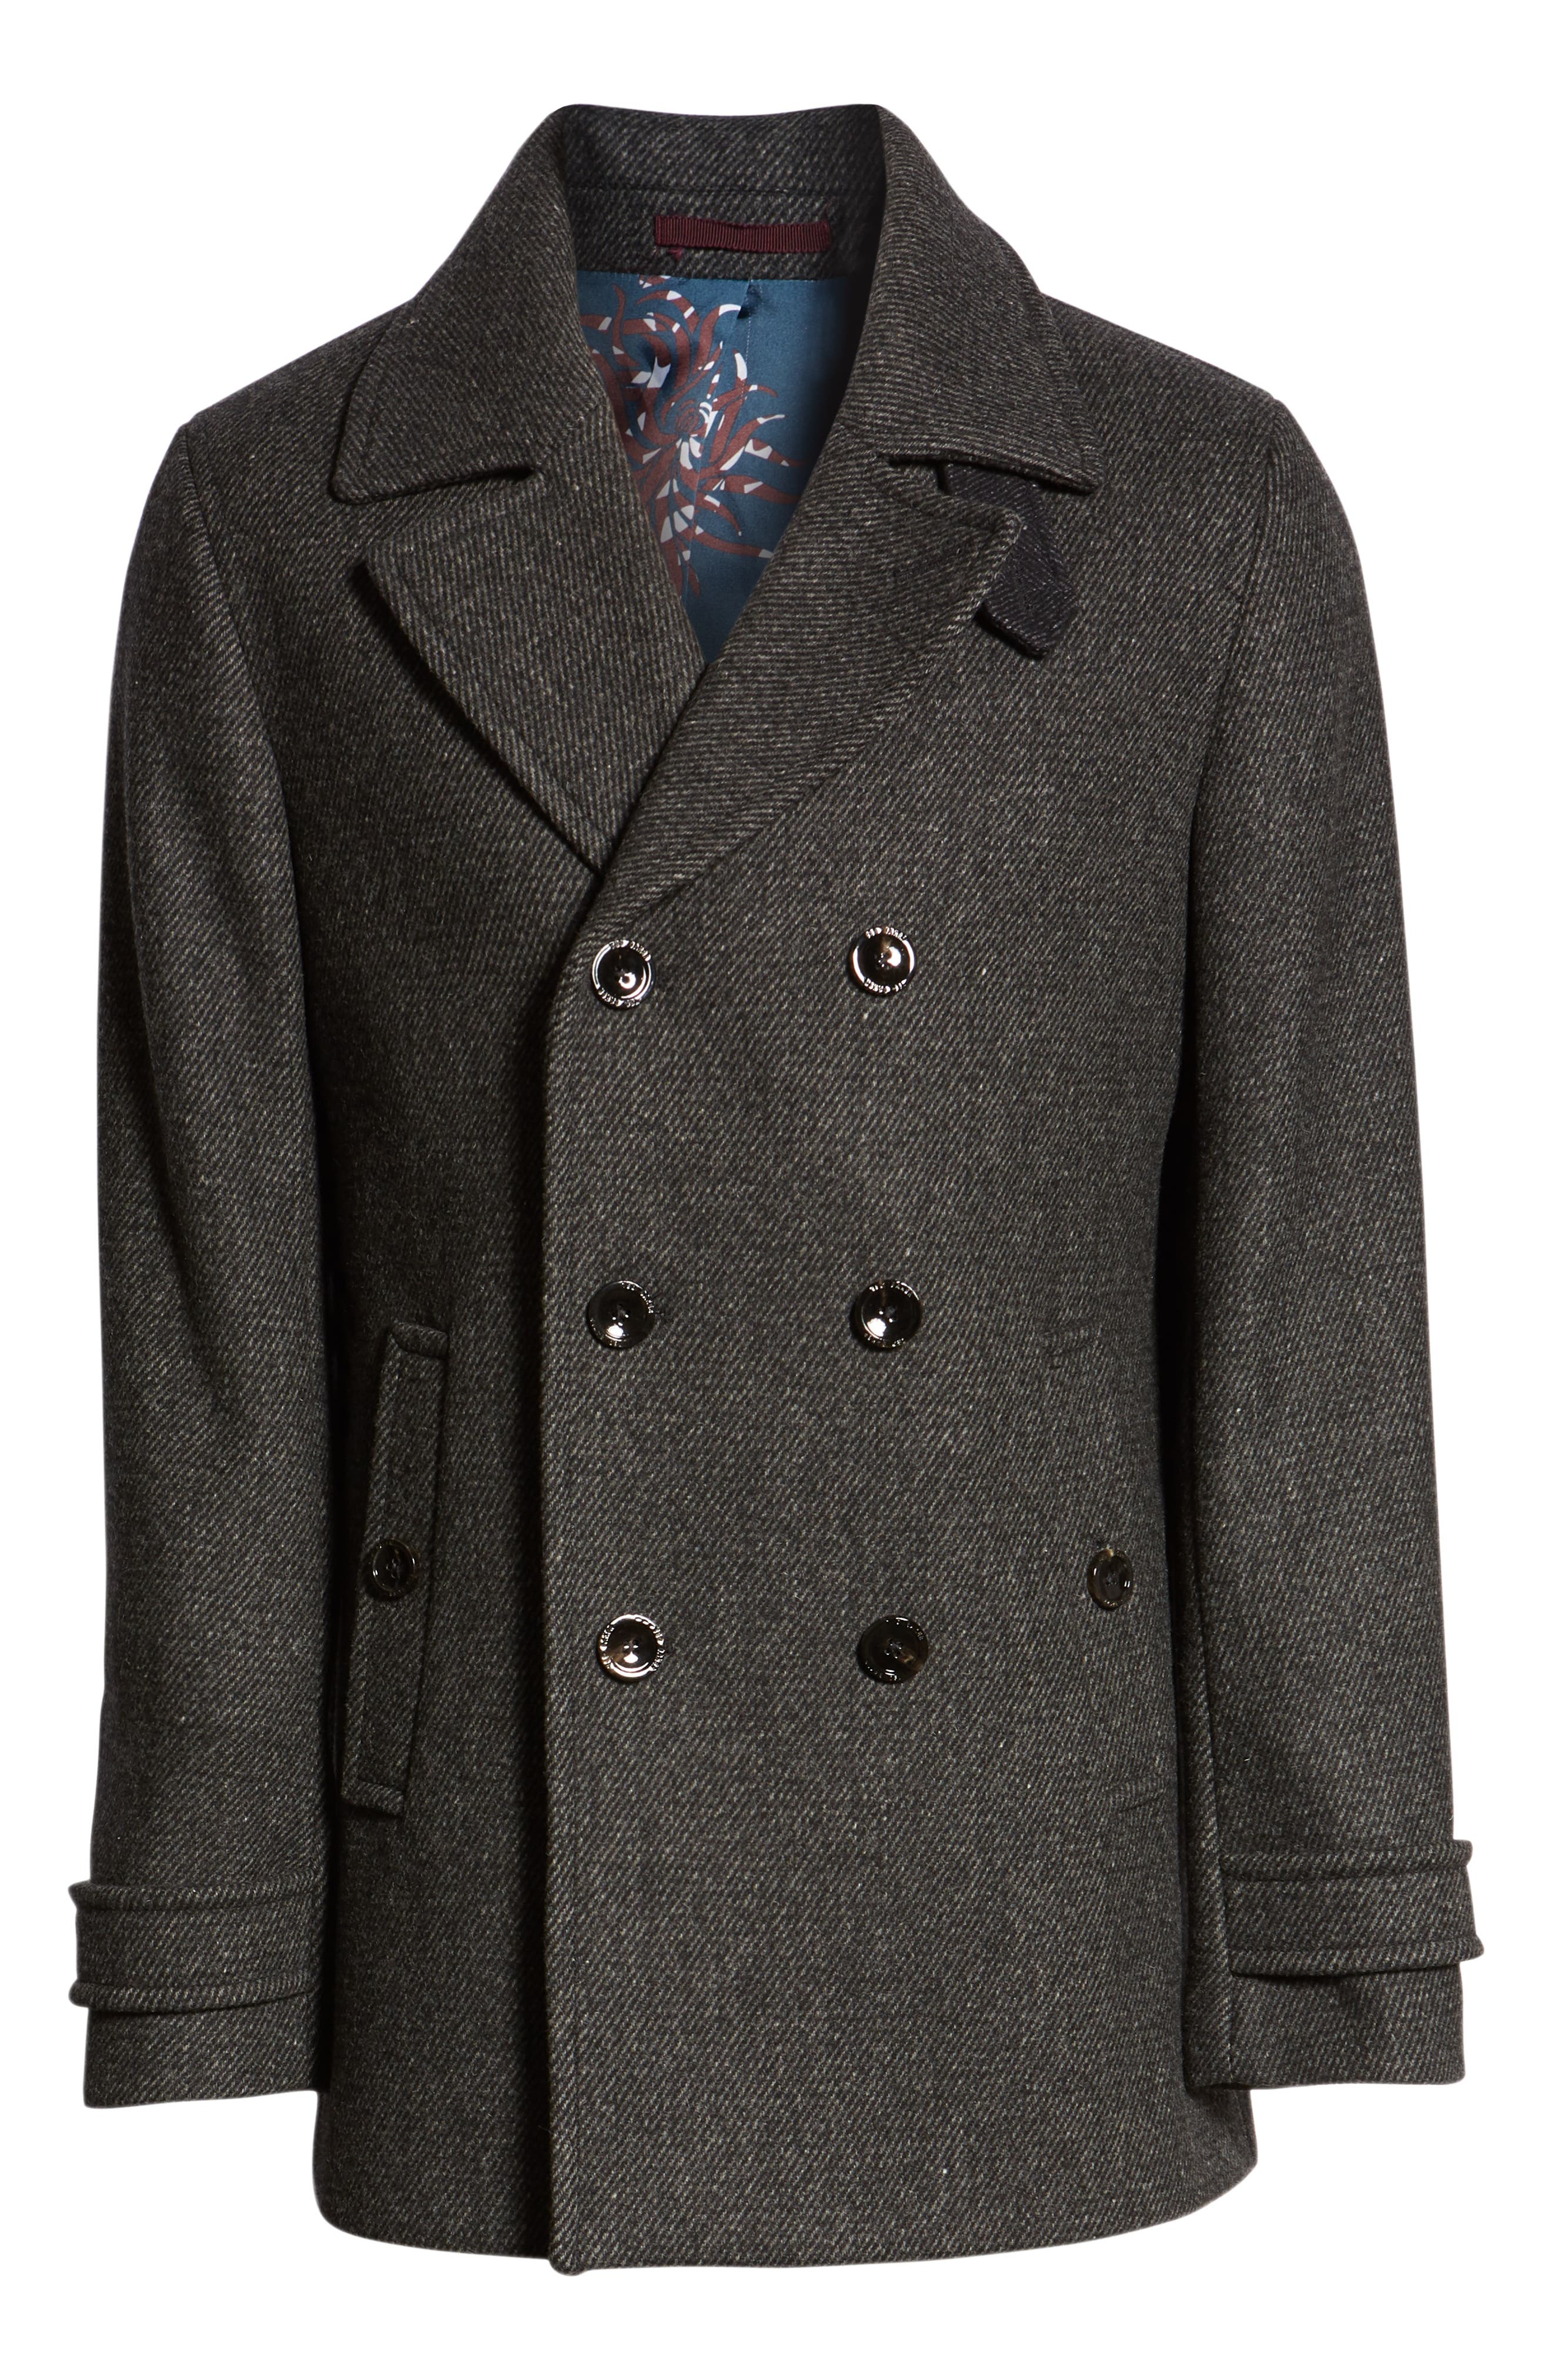 Grilled Wool Blend Peacoat,                             Alternate thumbnail 6, color,                             GREY